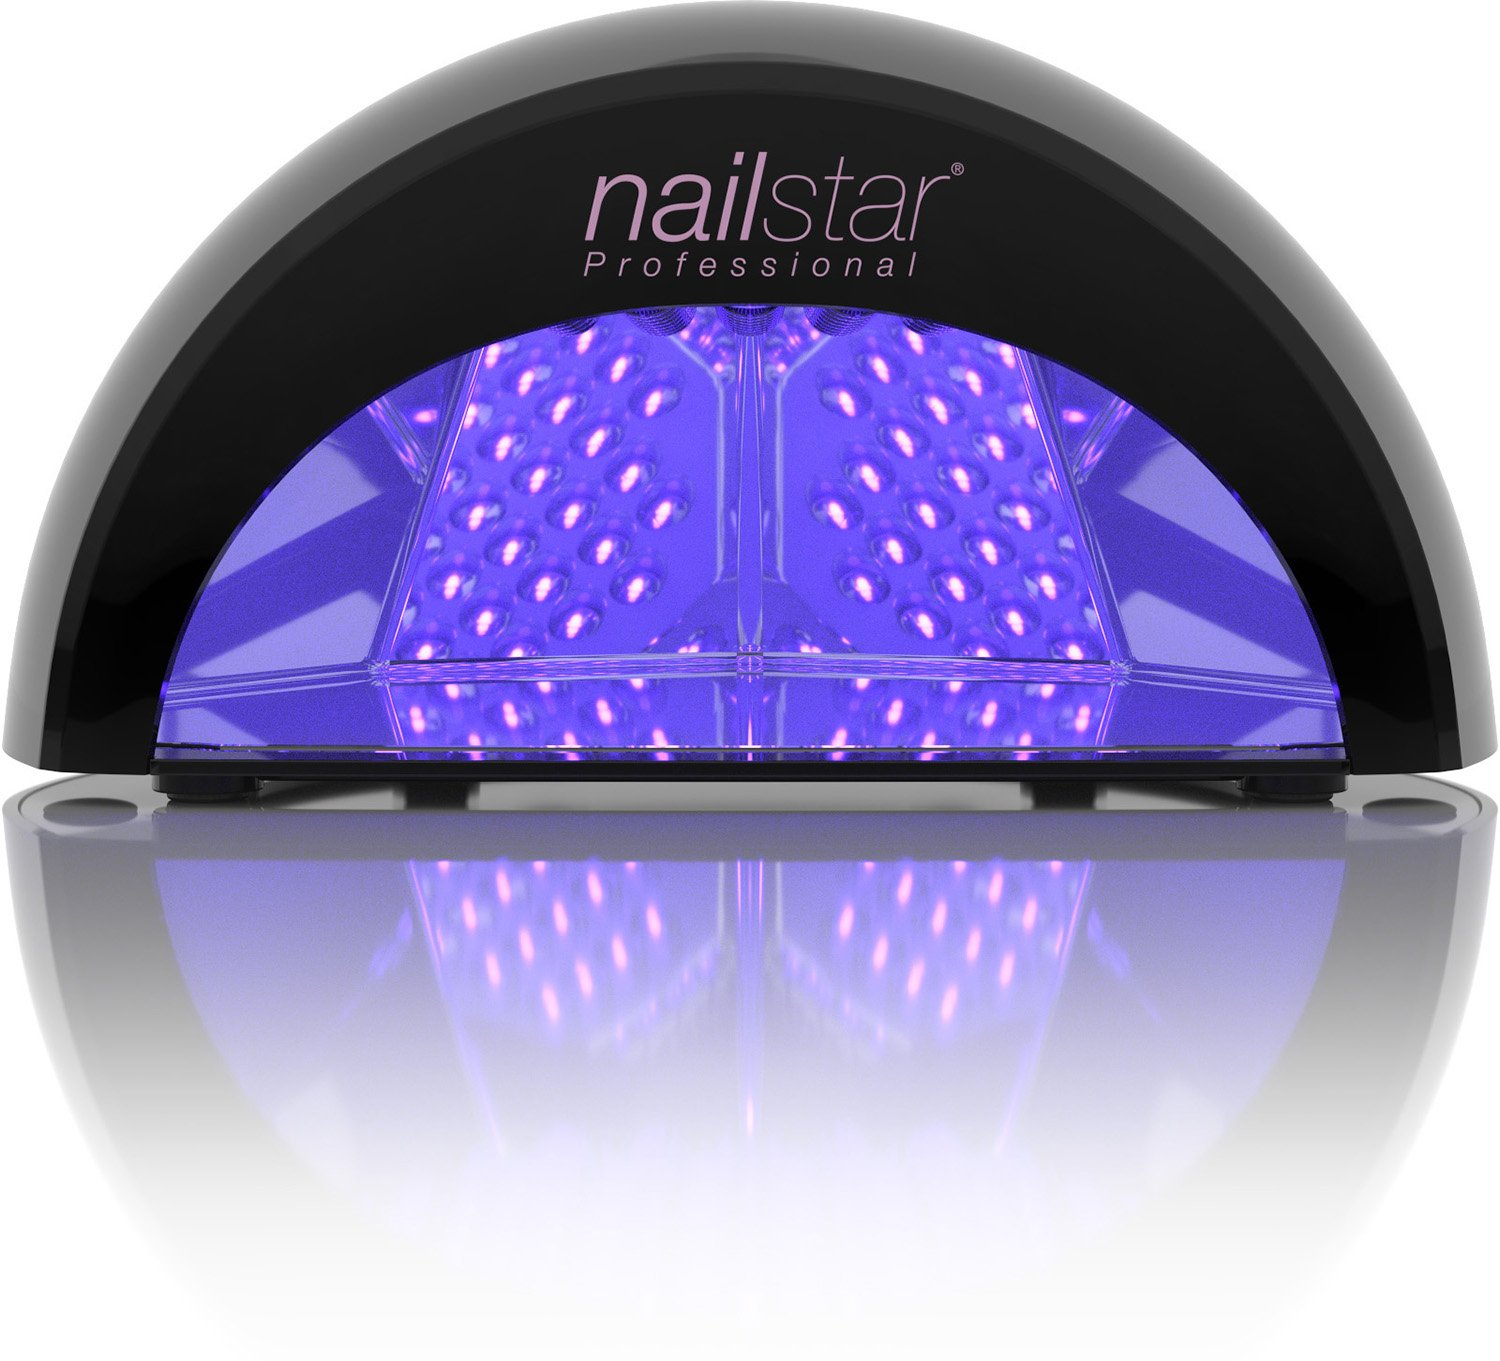 NailStar Professional LED Nail Dryer Nail Lamp for Gel Polish with 30sec, 60sec, 90sec and 30min Timers